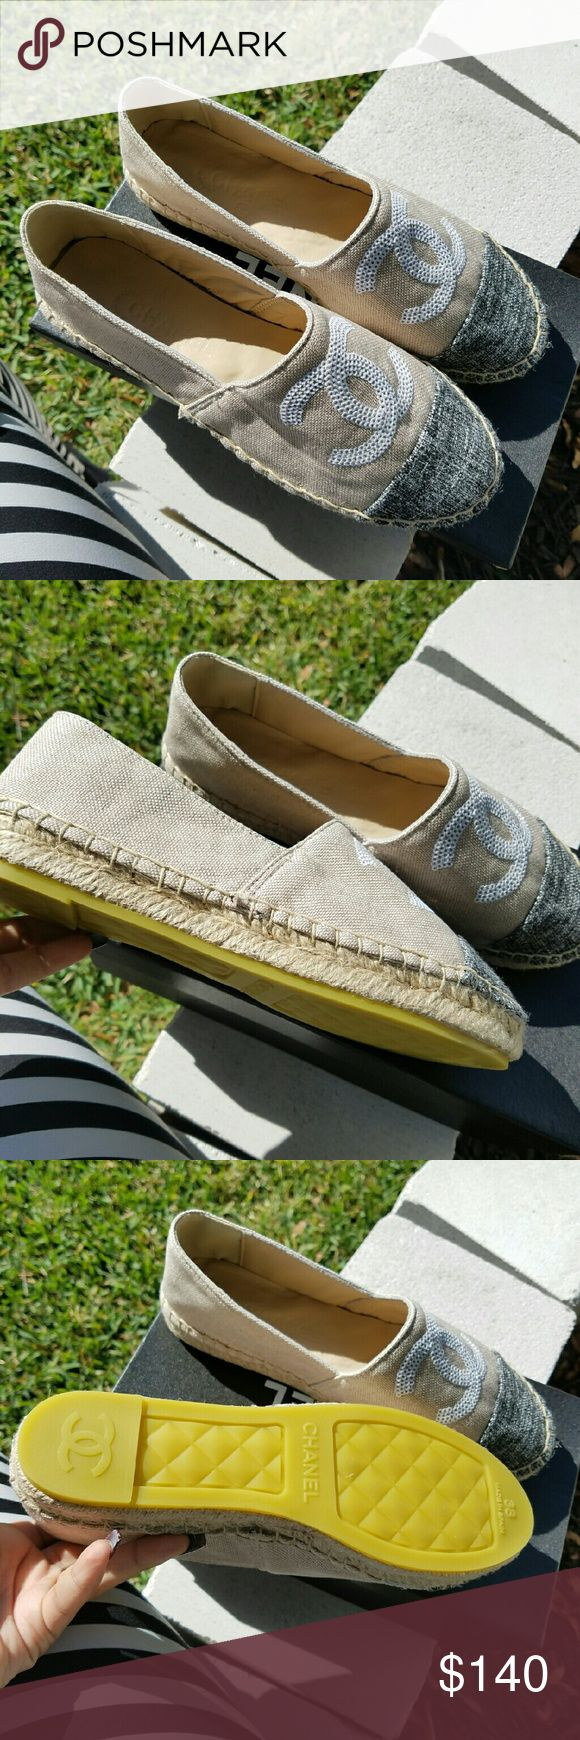 Espadrilles PRICE IS FIRM Brand new in box size 7 i would recommend for people who wear a 7, 7 1/2 they are a perfect fit ! PRICED ACCORDING TO AUTHENTICITY PLEASE CONSIDER PRICING OF NEW CHANEL ESPADRILLES THANKS LADIES CHANEL Shoes